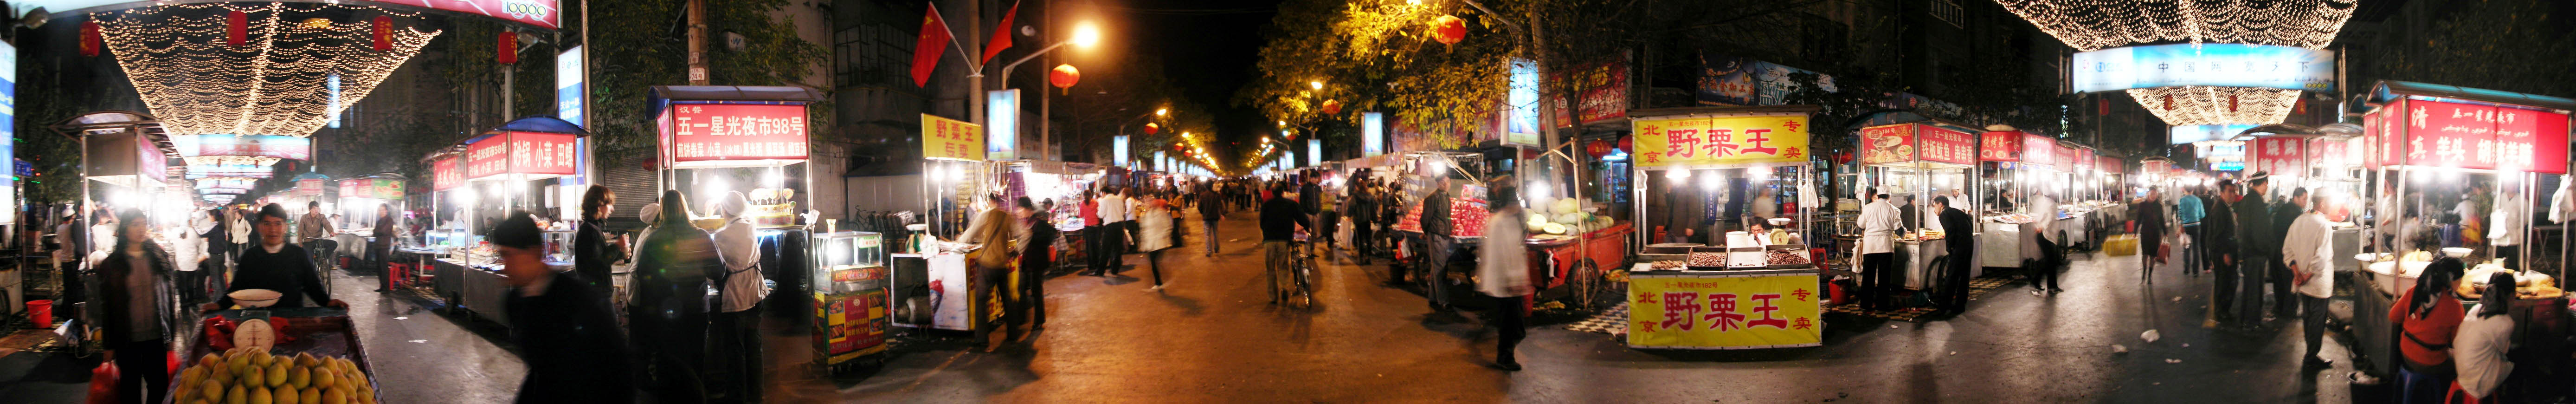 A 180-degree panorama shot of a night market in Urumqi.